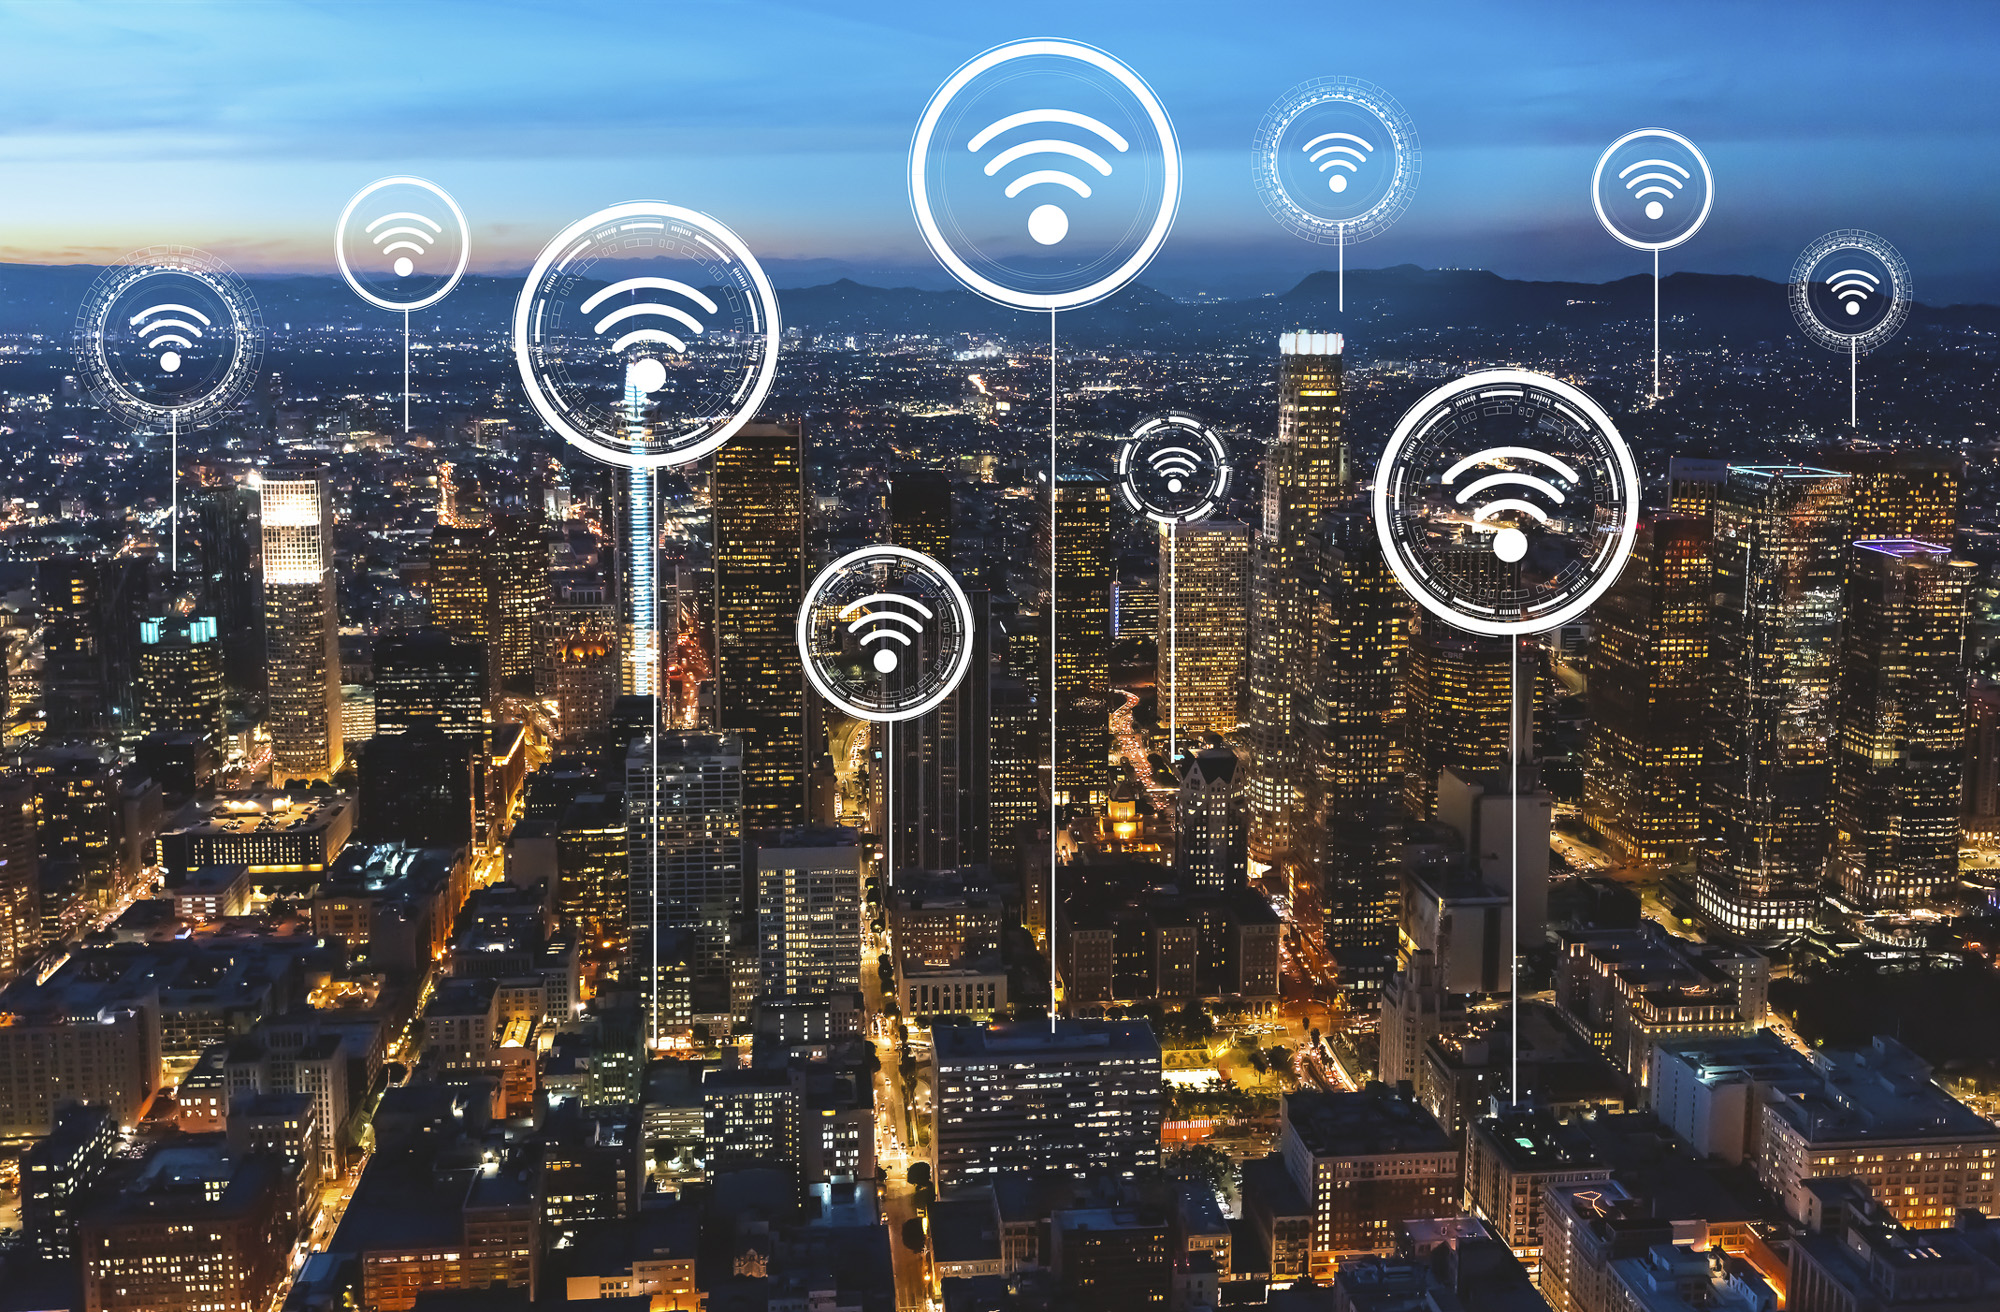 Google will be donating 100,000 wifi hotspots to help bridge California's digital divide during the coronavirus crisis. Is there a downside? Image via iStock